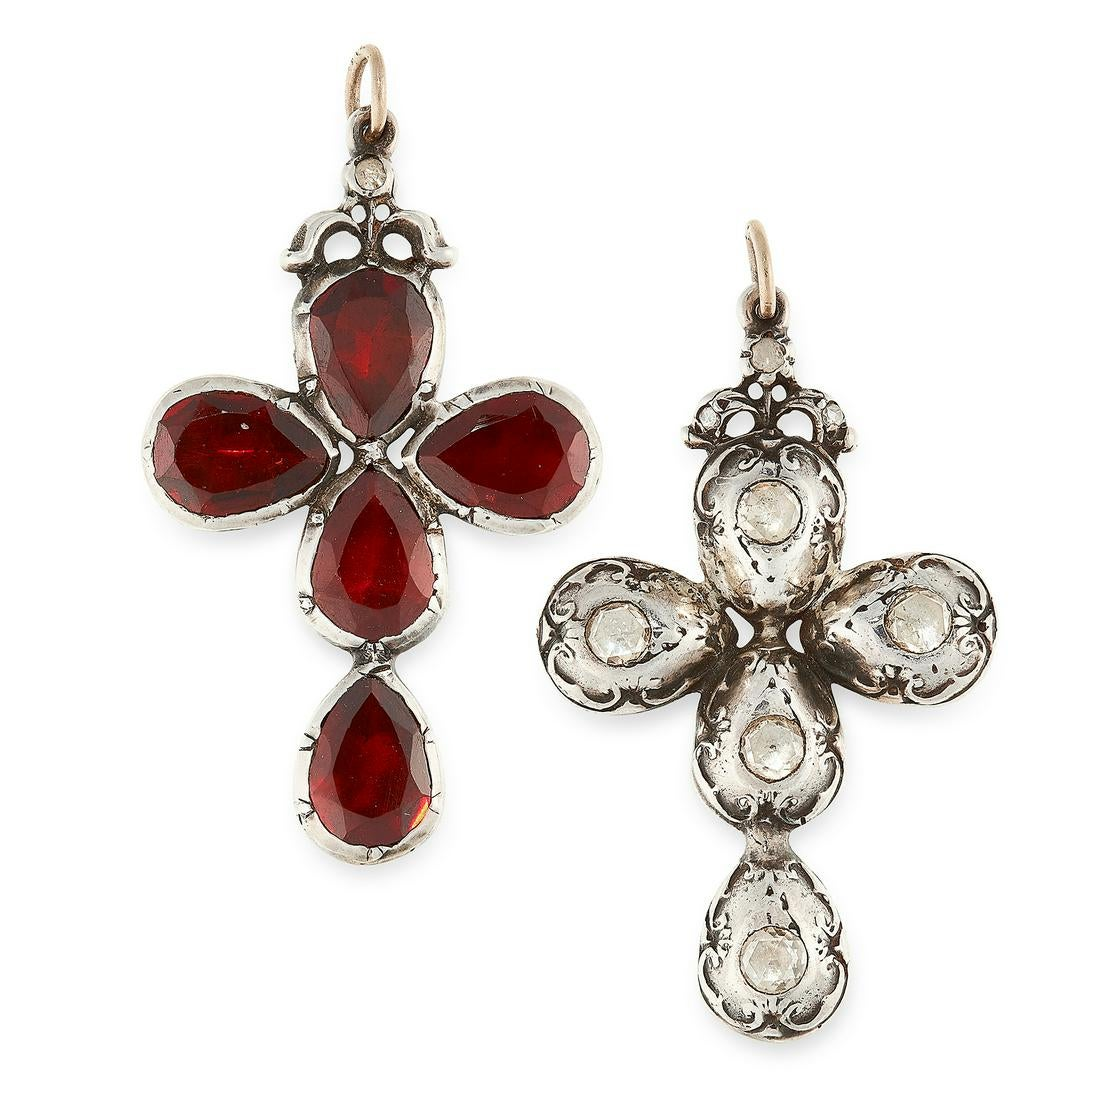 AN ANTIQUE DIAMOND AND GARNET CROSS PENDANT, 18TH OR 19TH CENTURY in silver, formed as a cross,